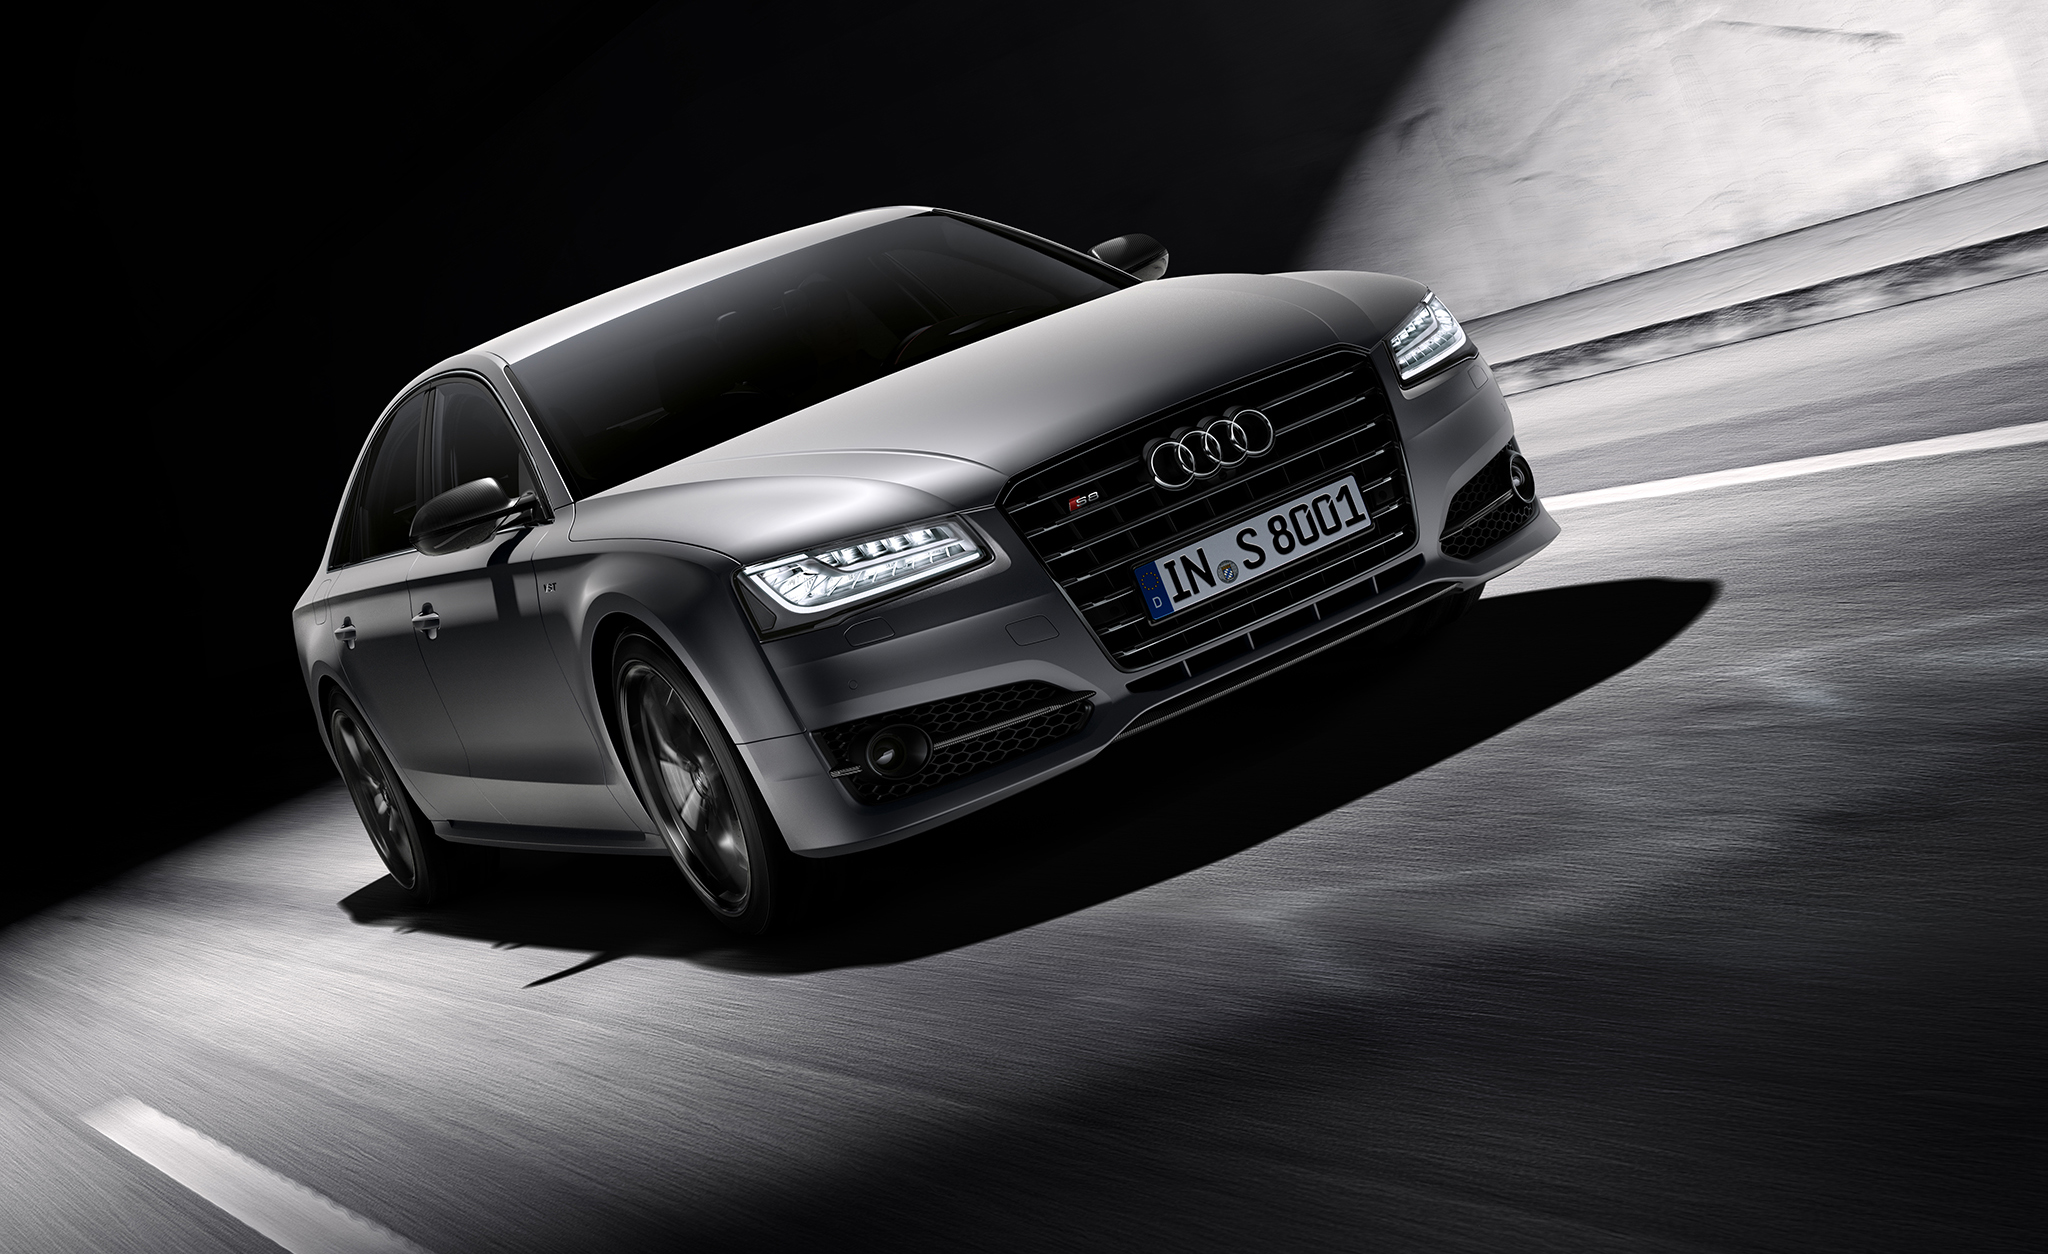 Audi S8 Plus | Full CGI | Agency Philipp und Keuntje